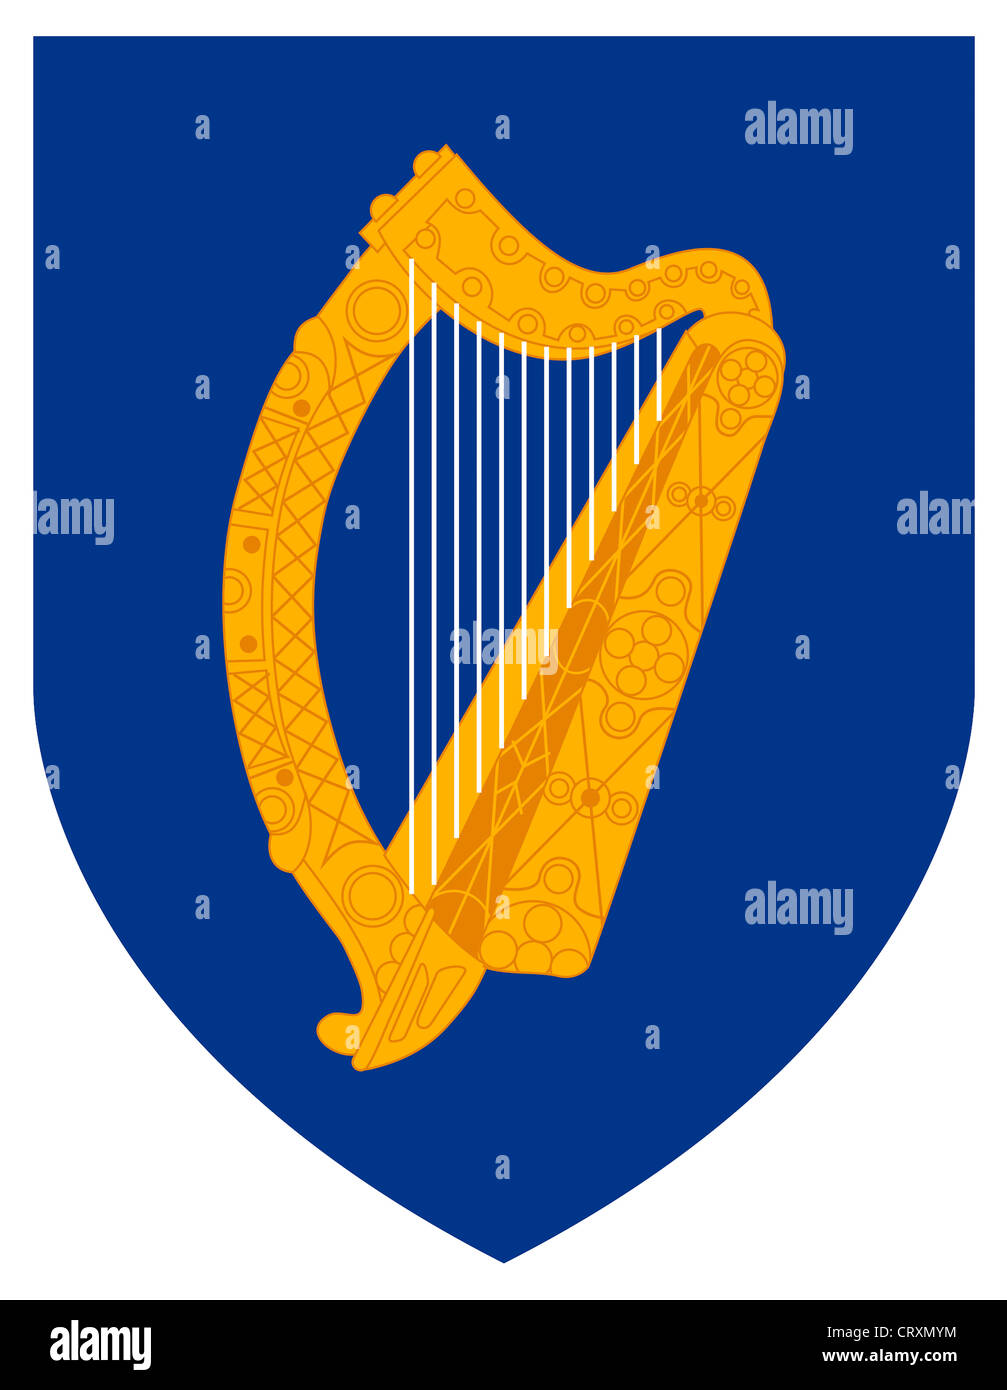 Coat of arms of the Republic of Ireland. - Stock Image